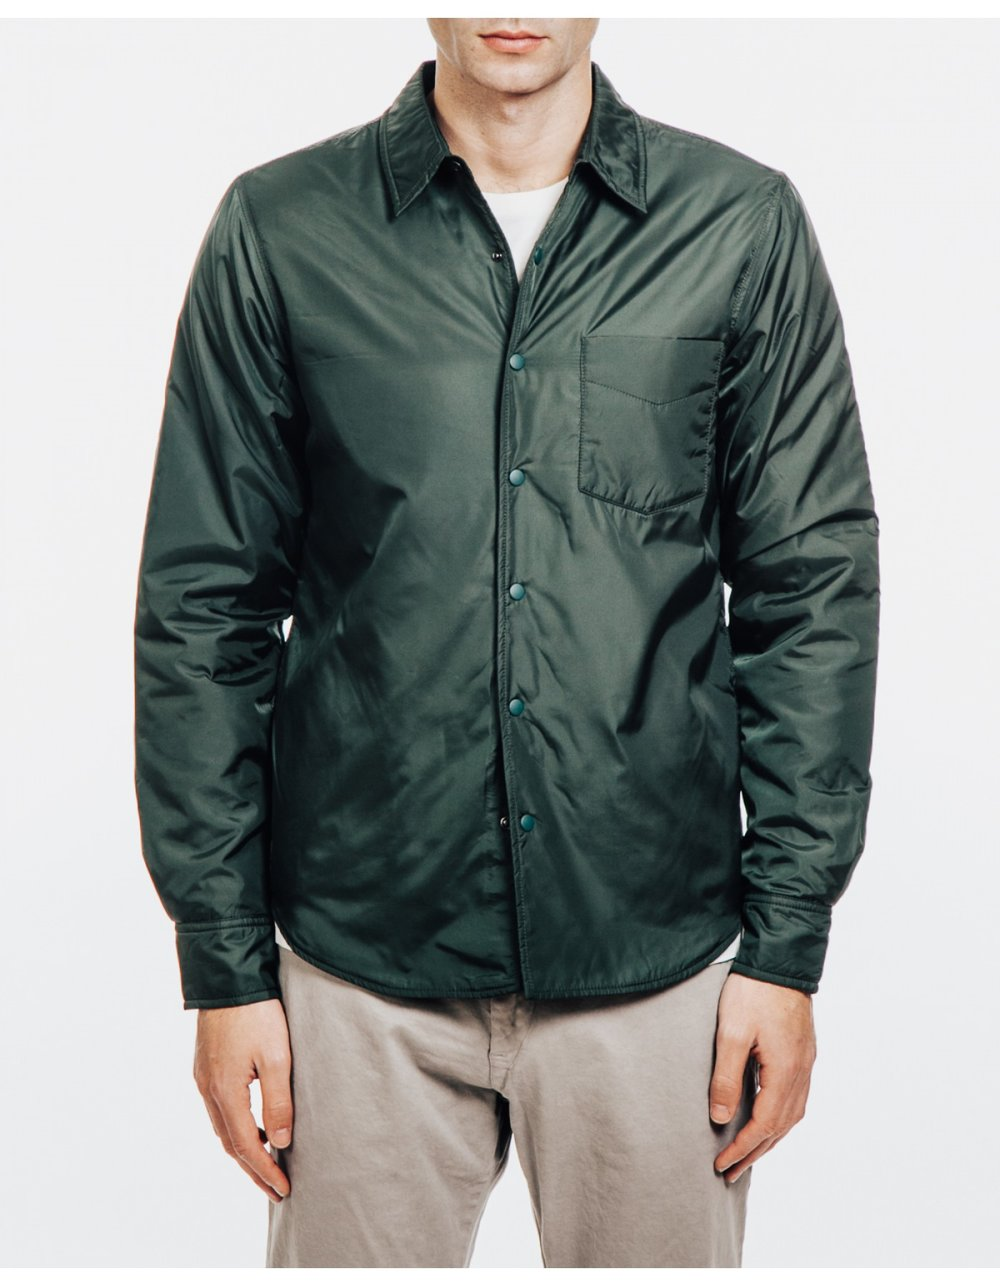 aspesi-marvin-shirt-jacket-dark-green-1.jpg